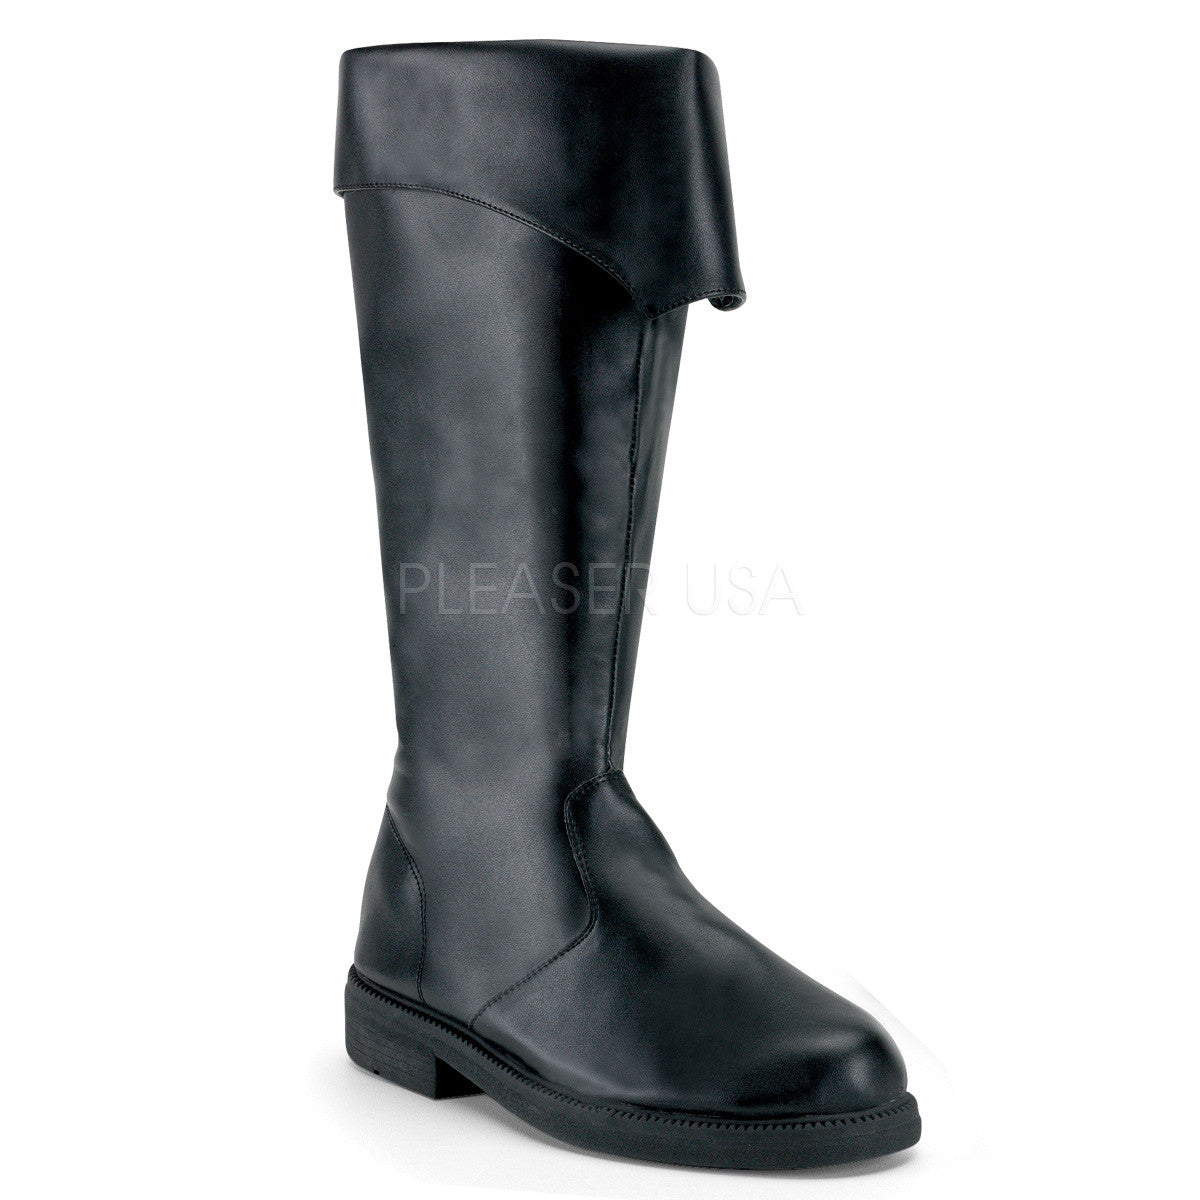 Men's Black Pu Pirate Boots - Shoecup.com